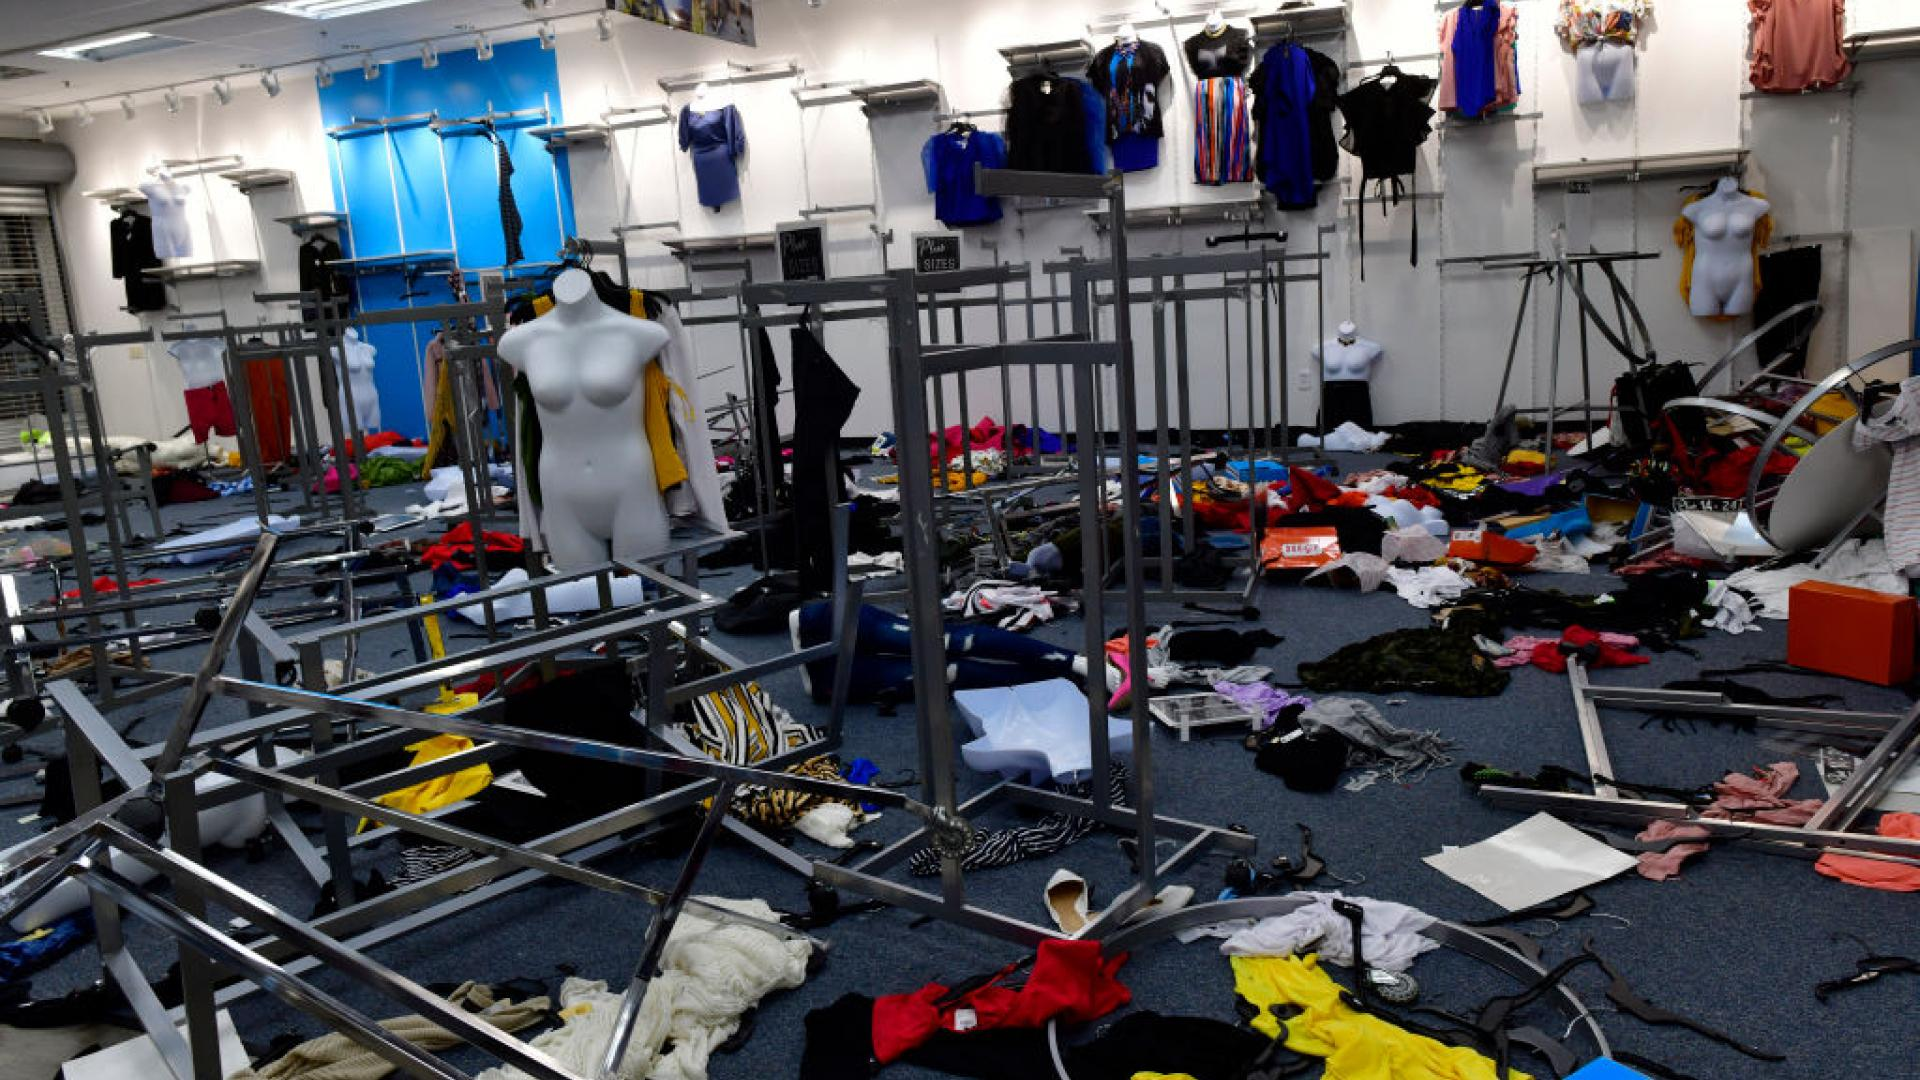 A looted clothing store in Philadelphia.